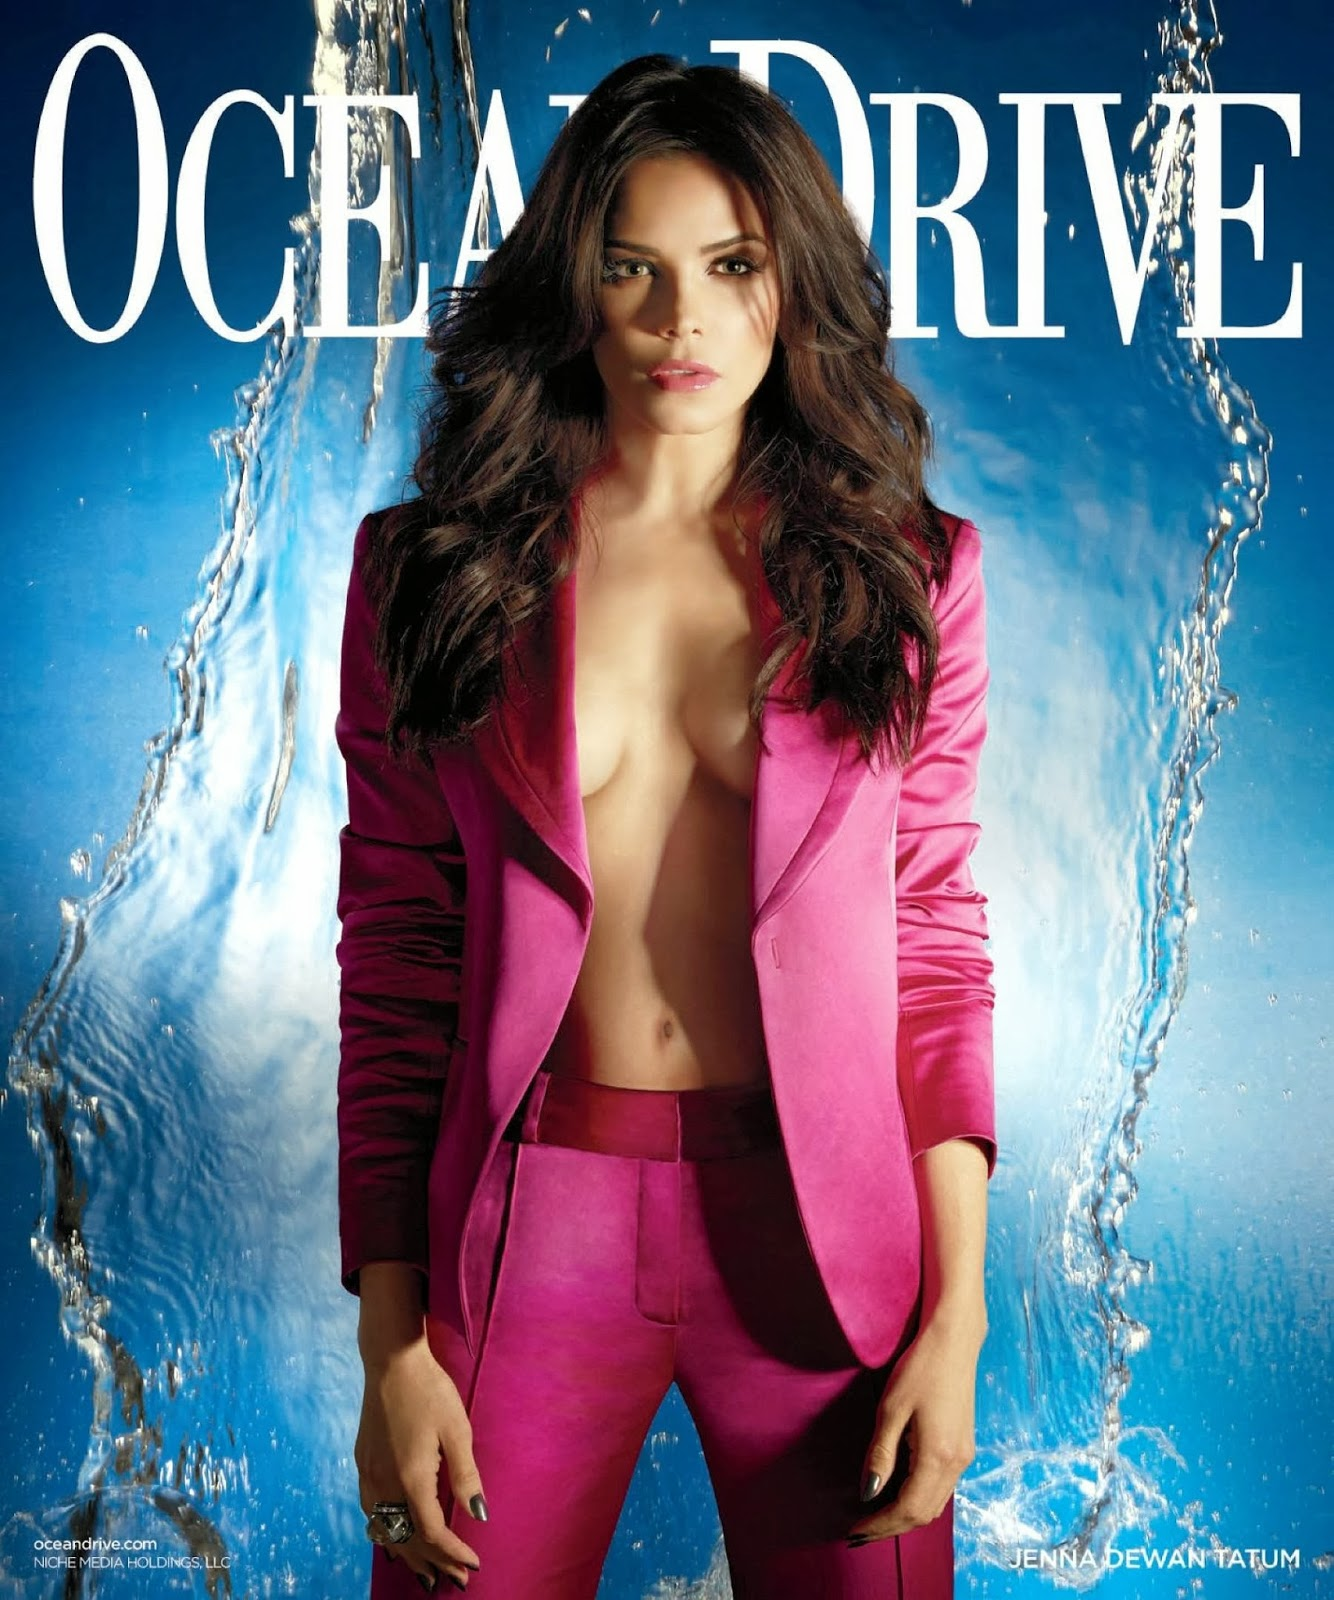 Magazine Photoshoot : Jenna Dewan-Tatum Photoshot For Robert Ascroft Ocean Drive Magazine January 2014 Issue